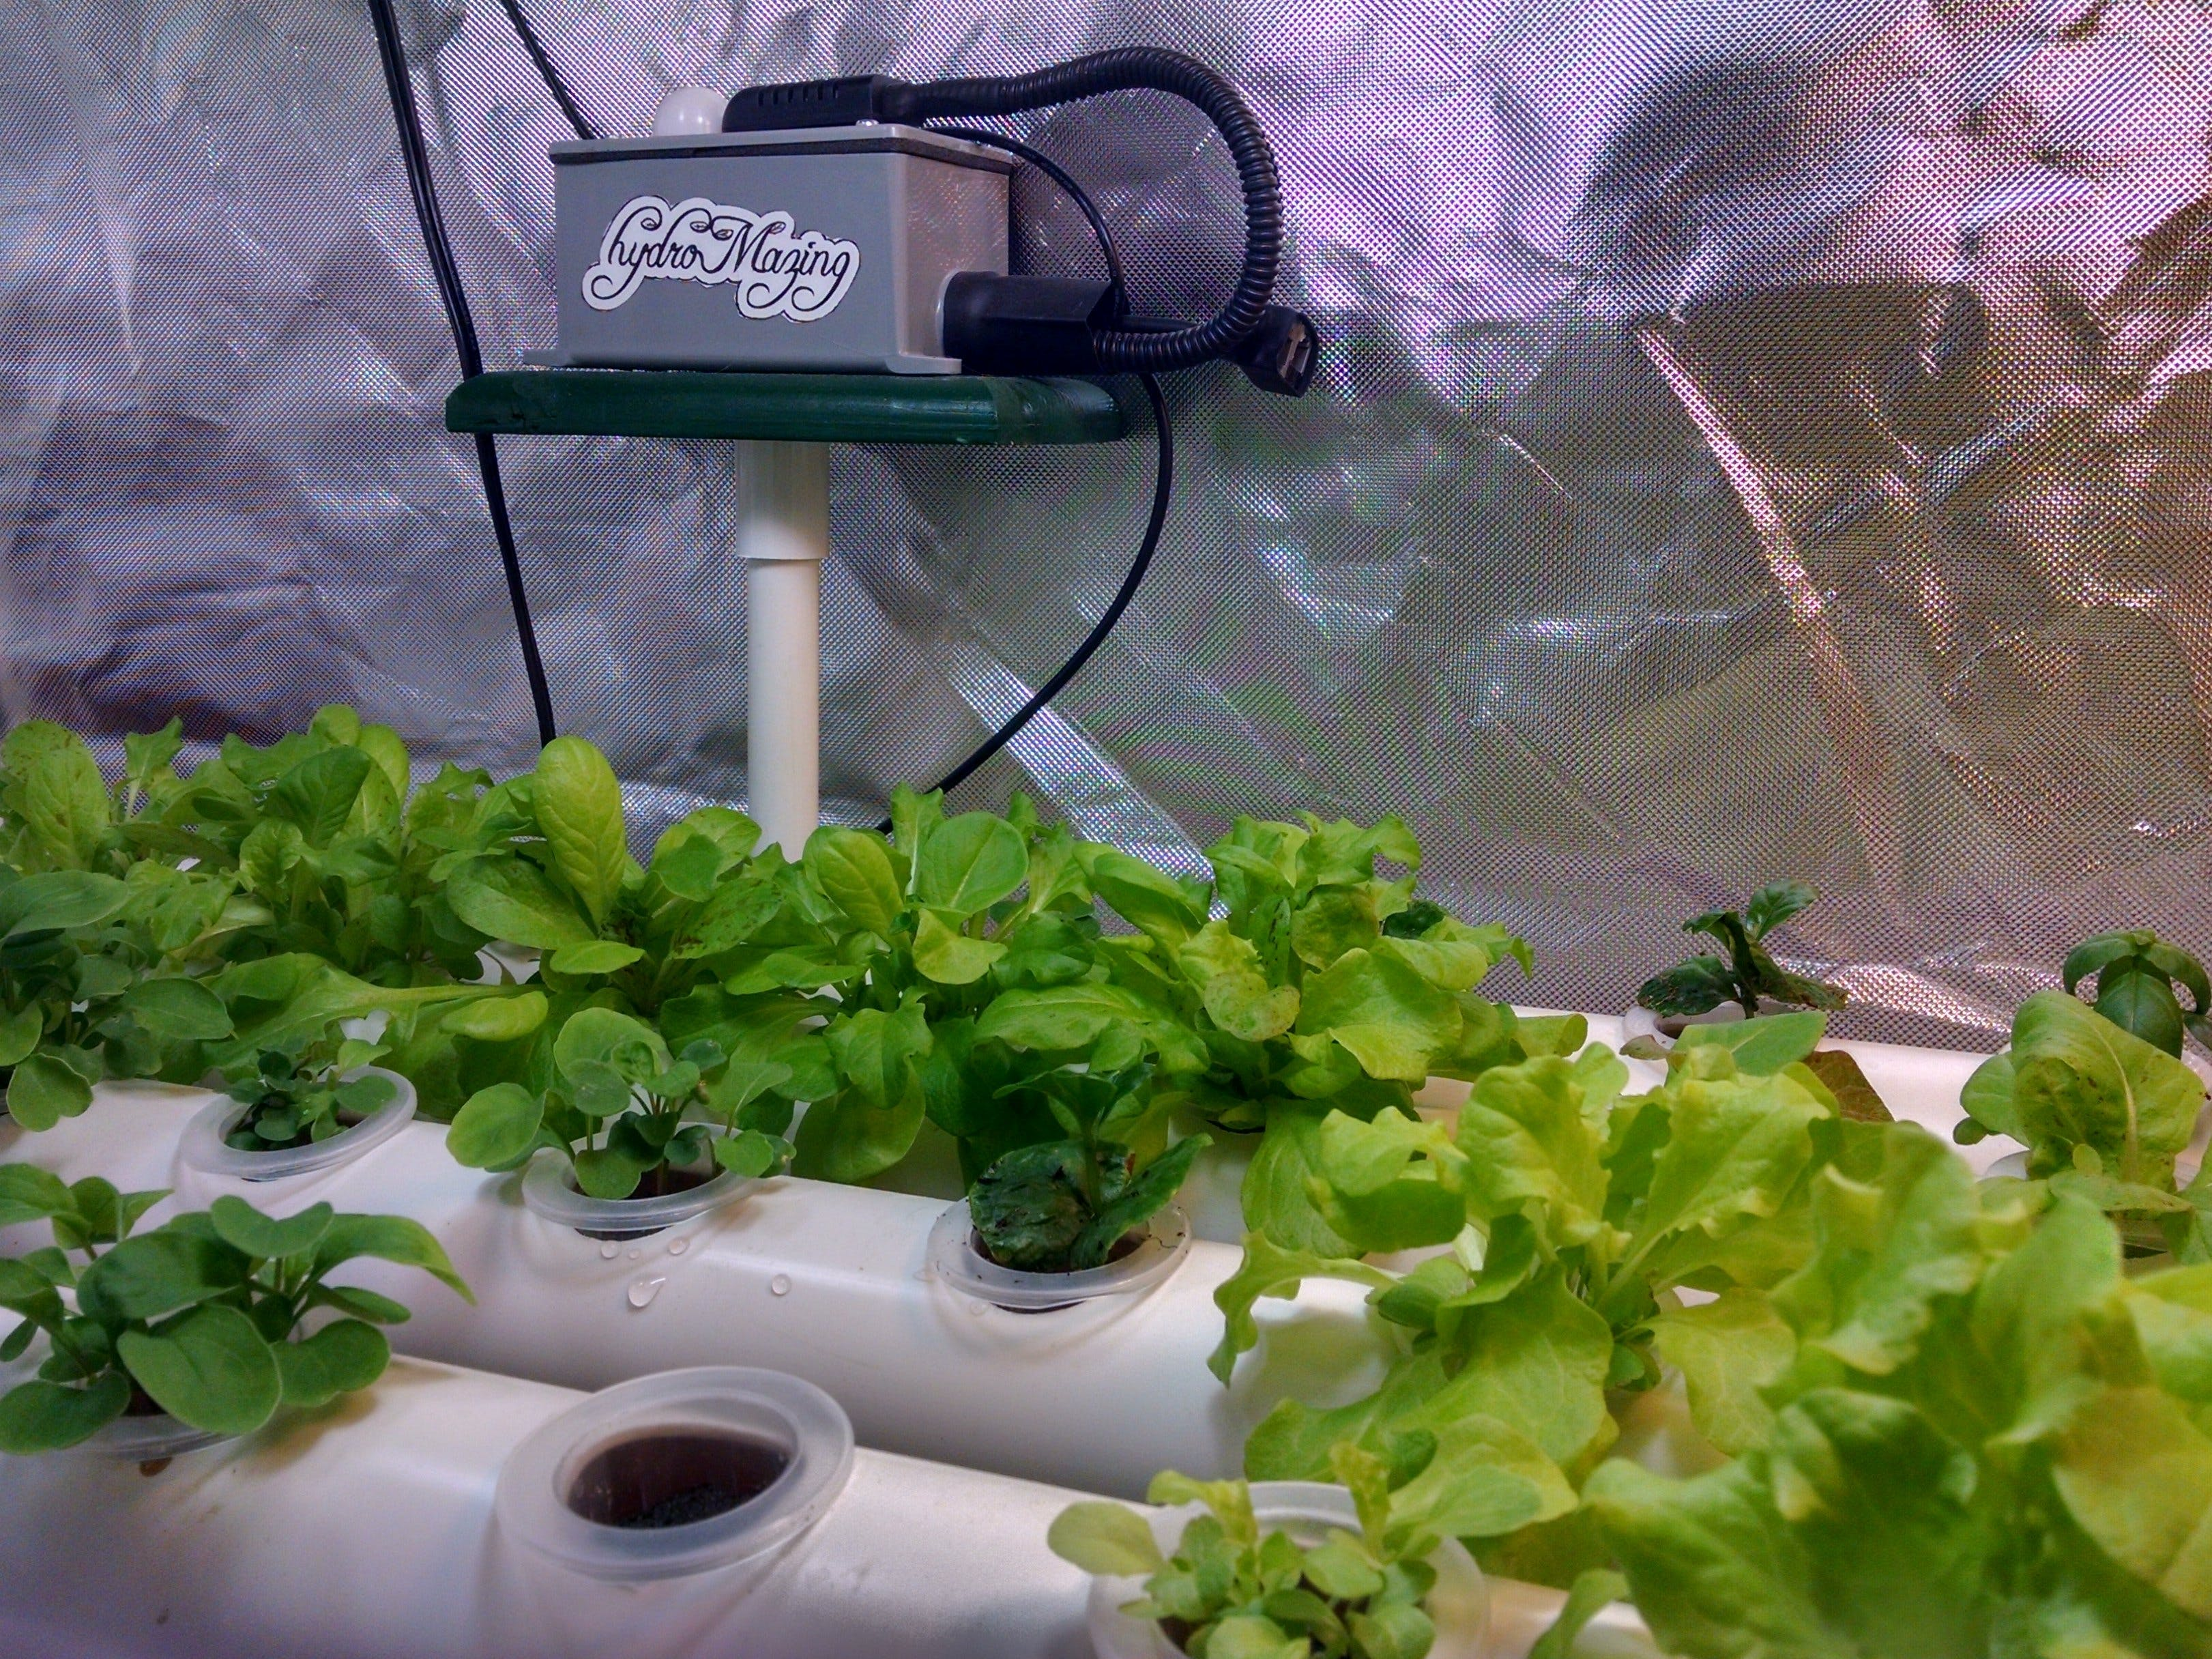 The hydroMazing Smart Garden System